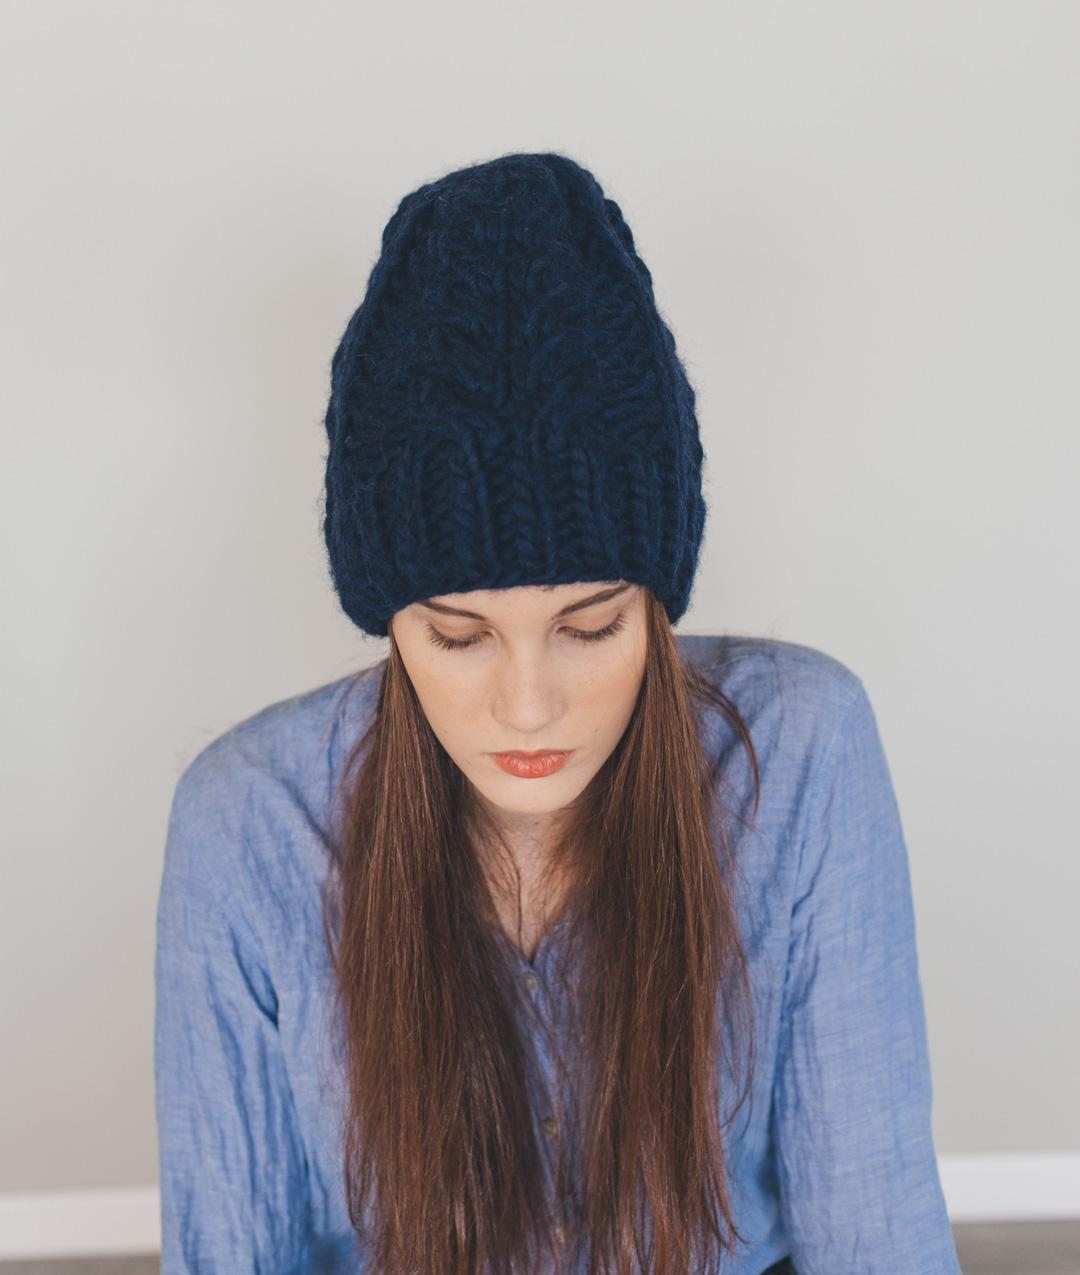 Hats and Beanies - Wool - Cool Hat - 1